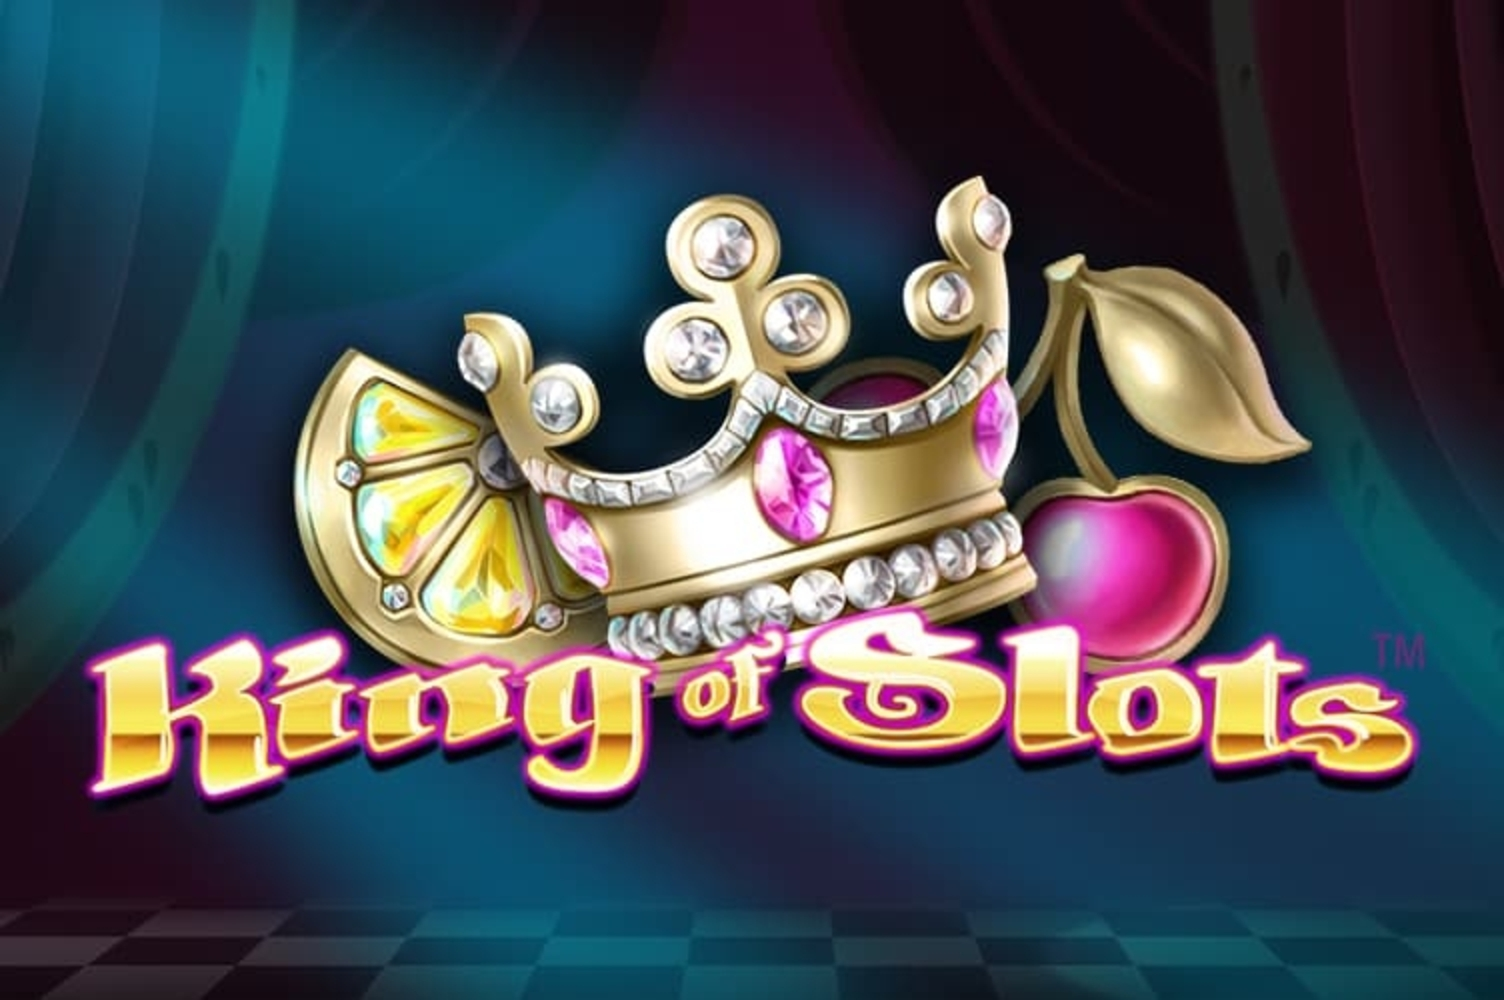 King of Slots Online Slot Demo Game by NetEnt